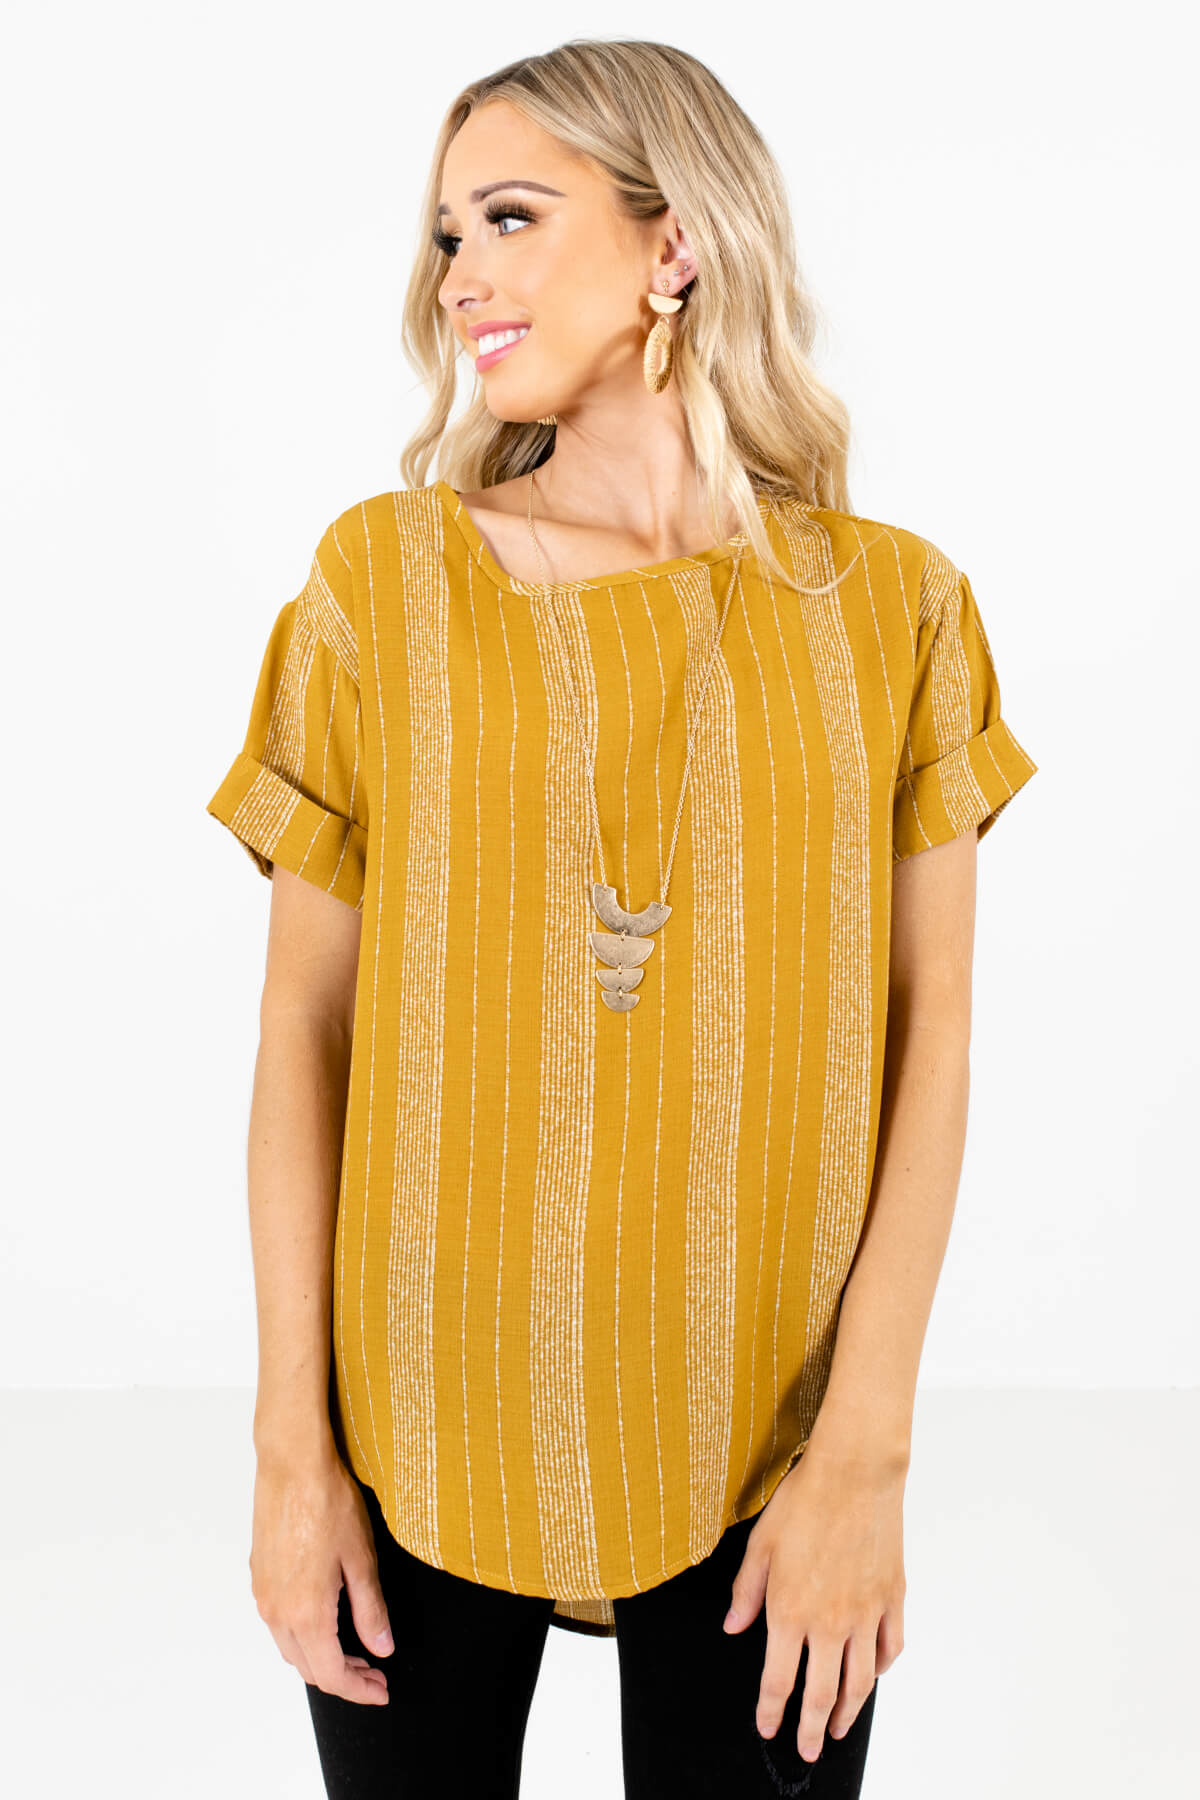 Mustard Yellow and White Stripe Patterned Boutique Tops for Women